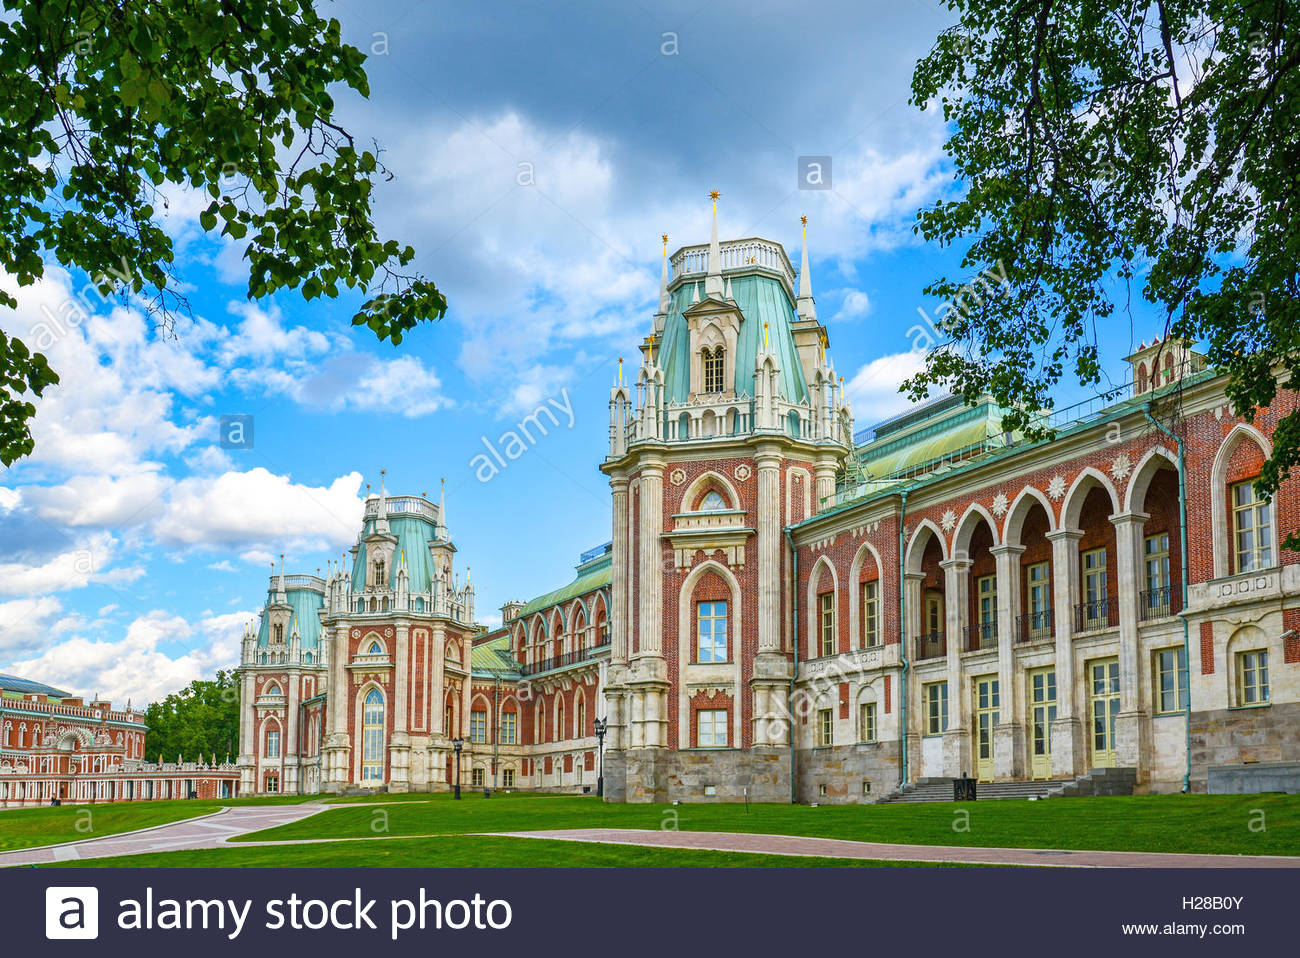 Tsaritsyno Moscow, Moscow, Russia - June 08, 2016. Grand Palace in Tsaritsyno museum ...